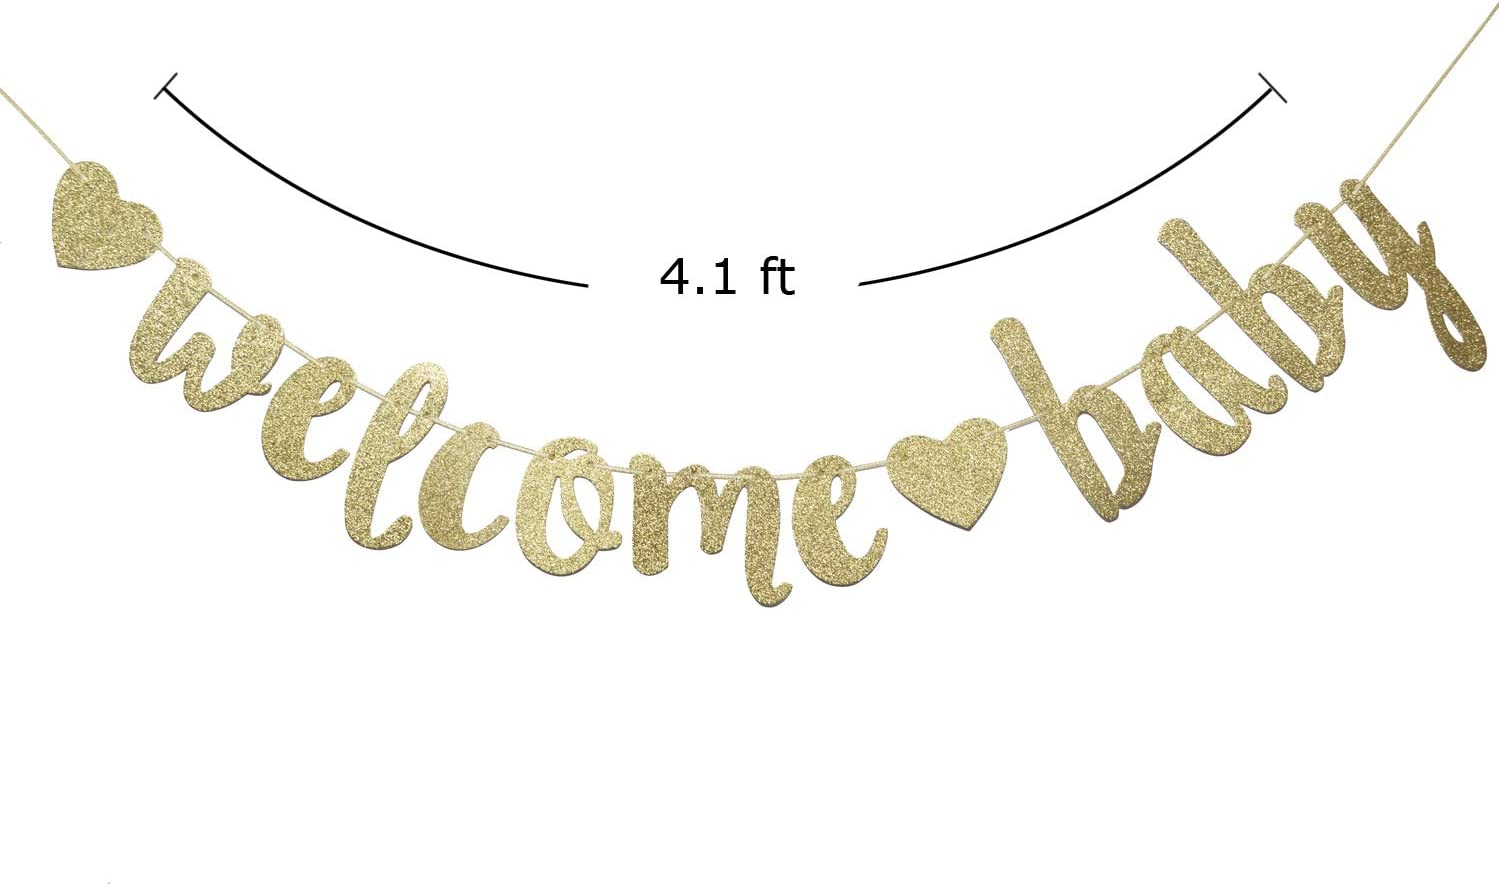 Rose Gold Glitter Boy or Girl Banner for Baby Shower Gender Reveal Bunting New Born Celebration Party Decoration Supplies Gold Glitter